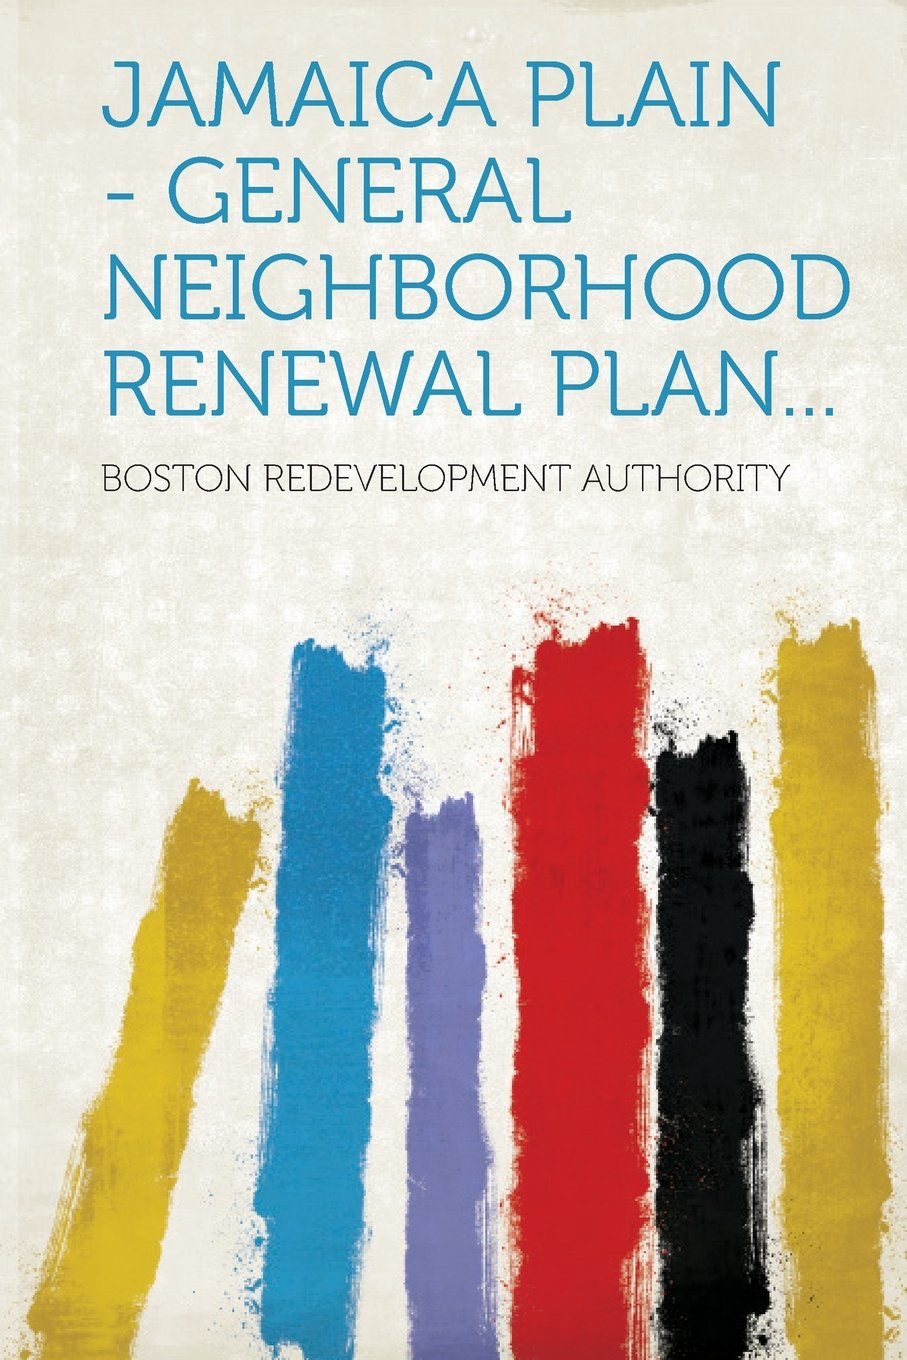 Jamaica Plain - General Neighborhood Renewal Plan.